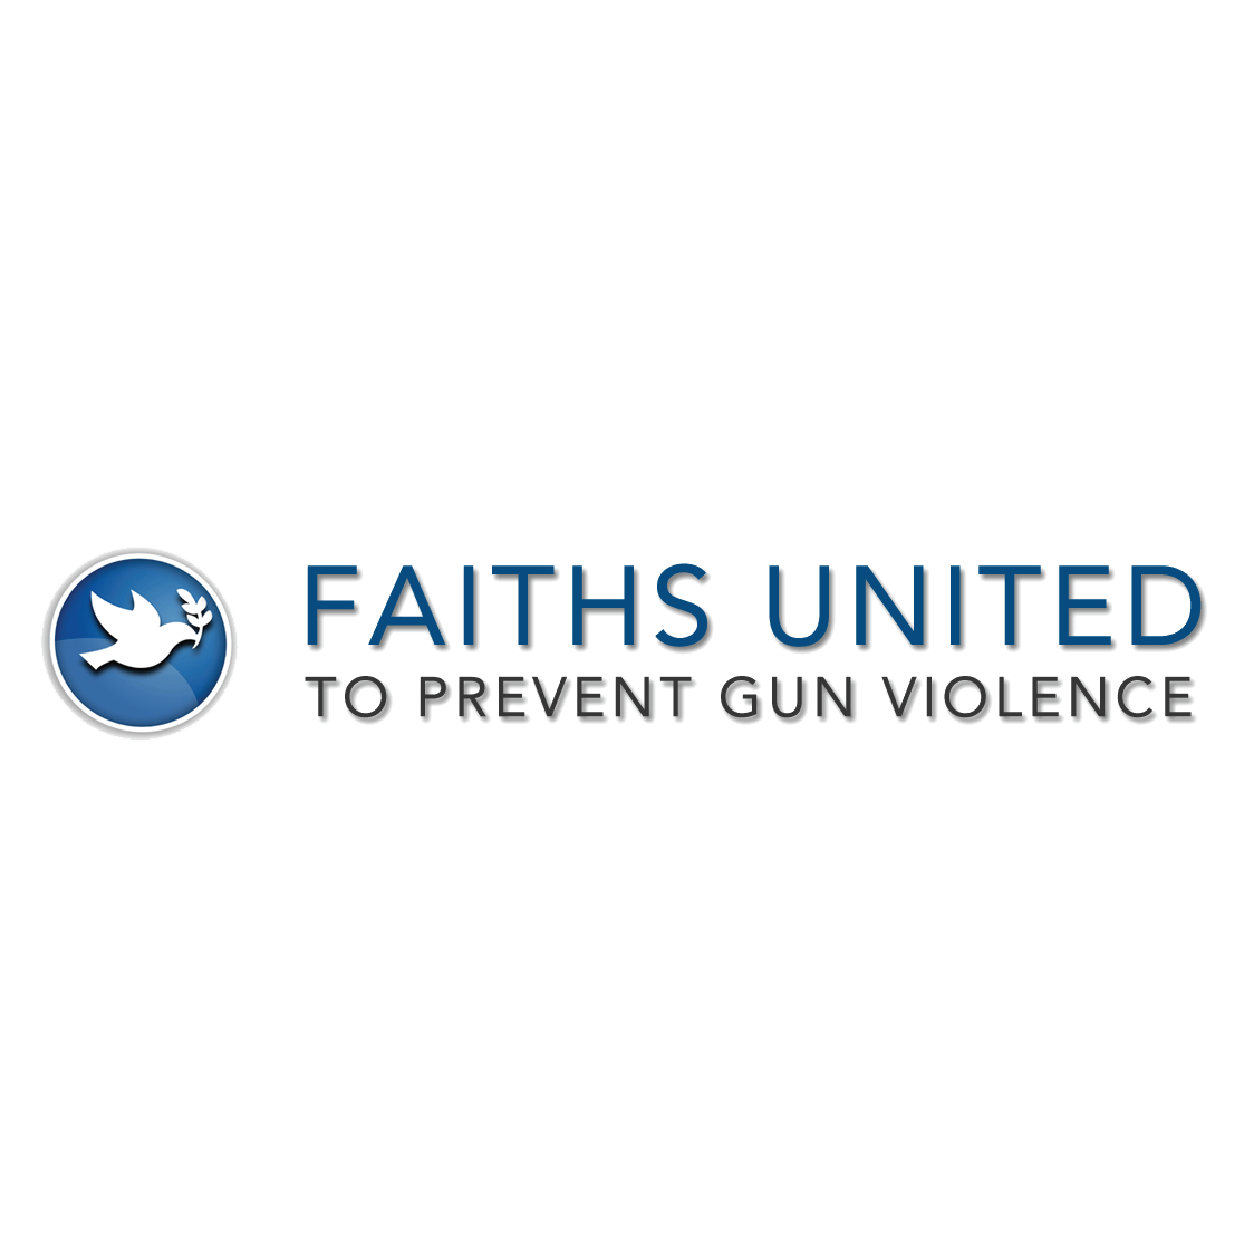 NA_Partners_Logos_Faiths United.png